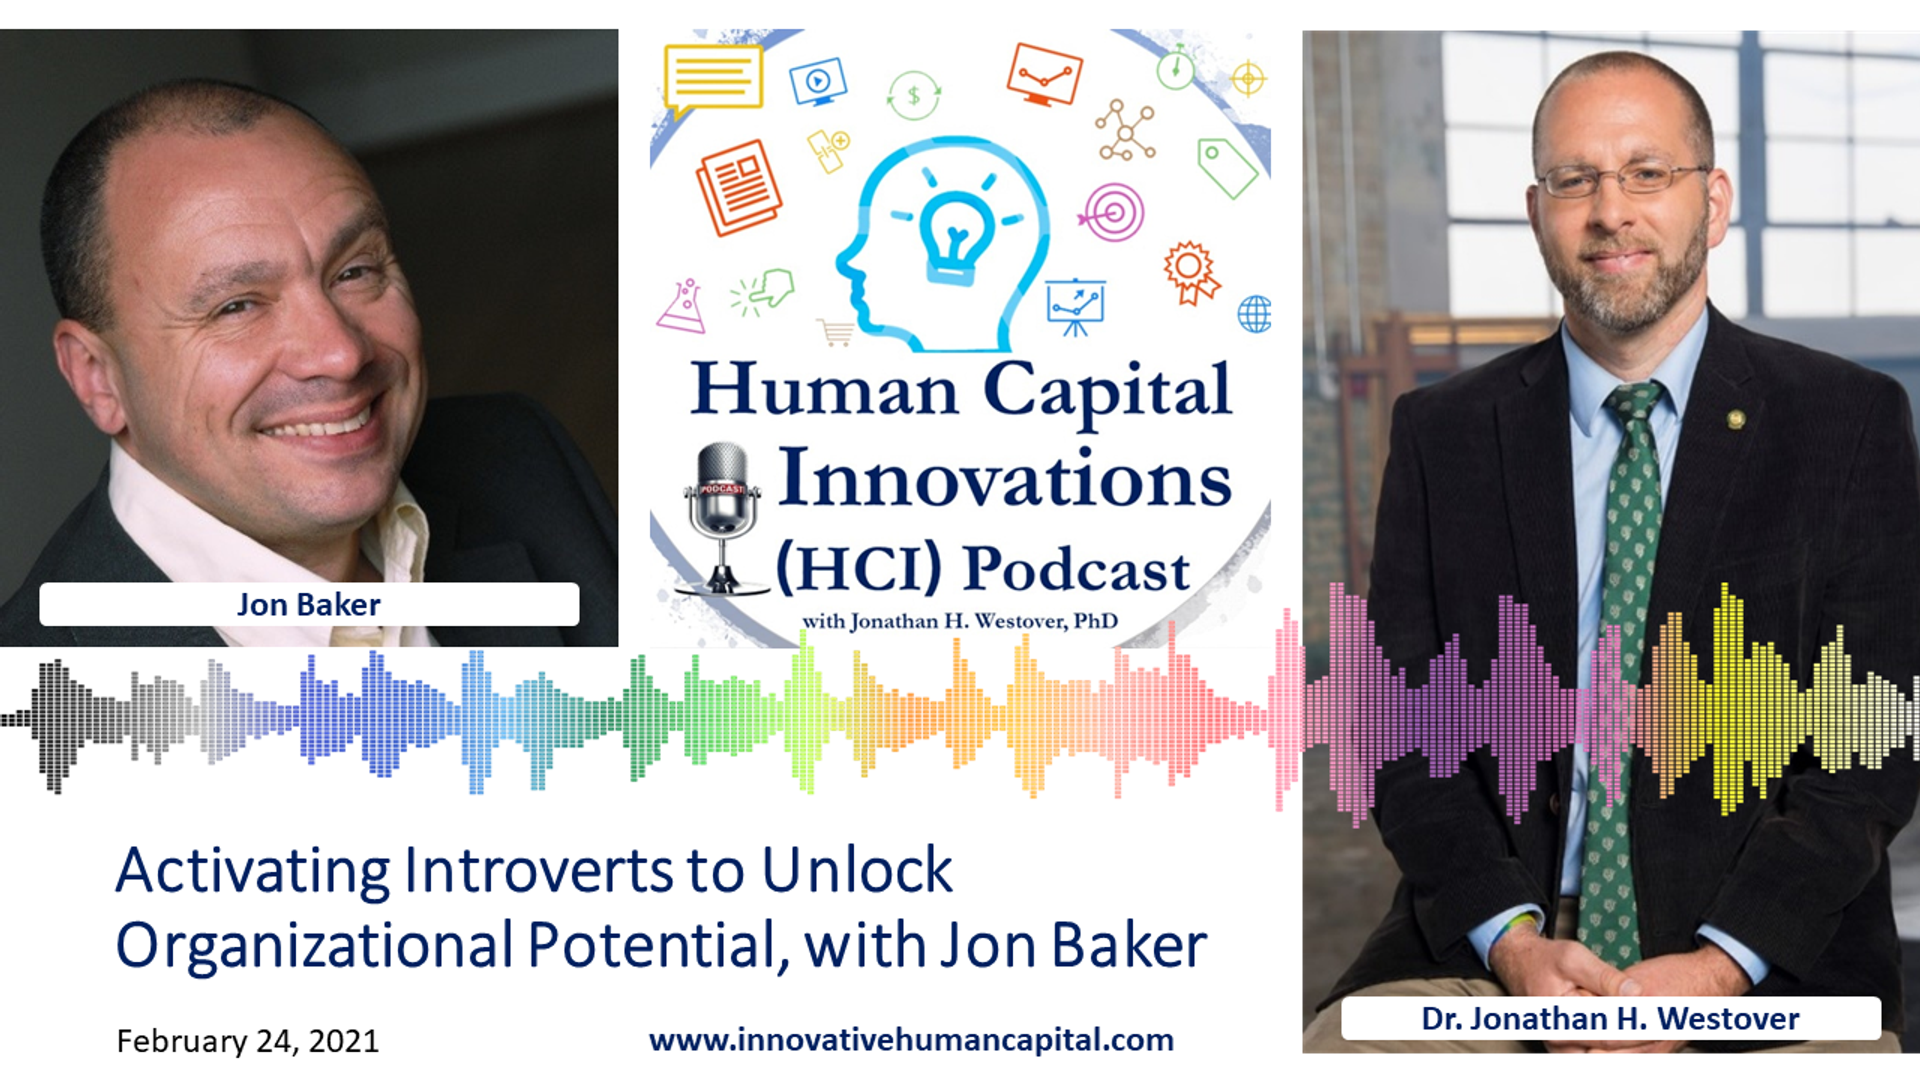 Activating Introverts to Unlock Organizational Potential